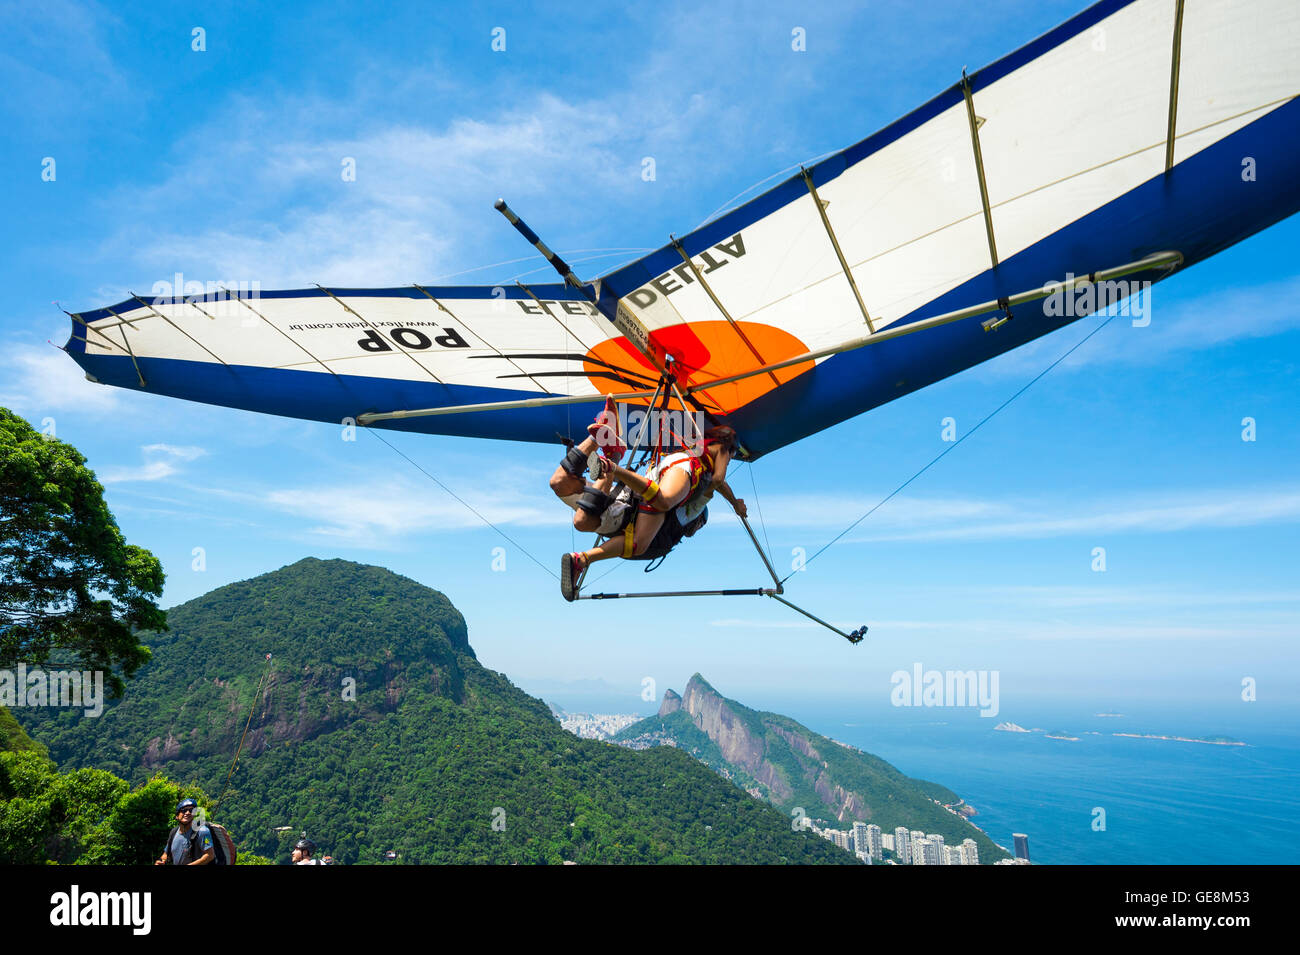 RIO DE JANEIRO - MARCH 22, 2016: A hang gliding instructor takes off with a passenger from Pedra Bonita. - Stock Image